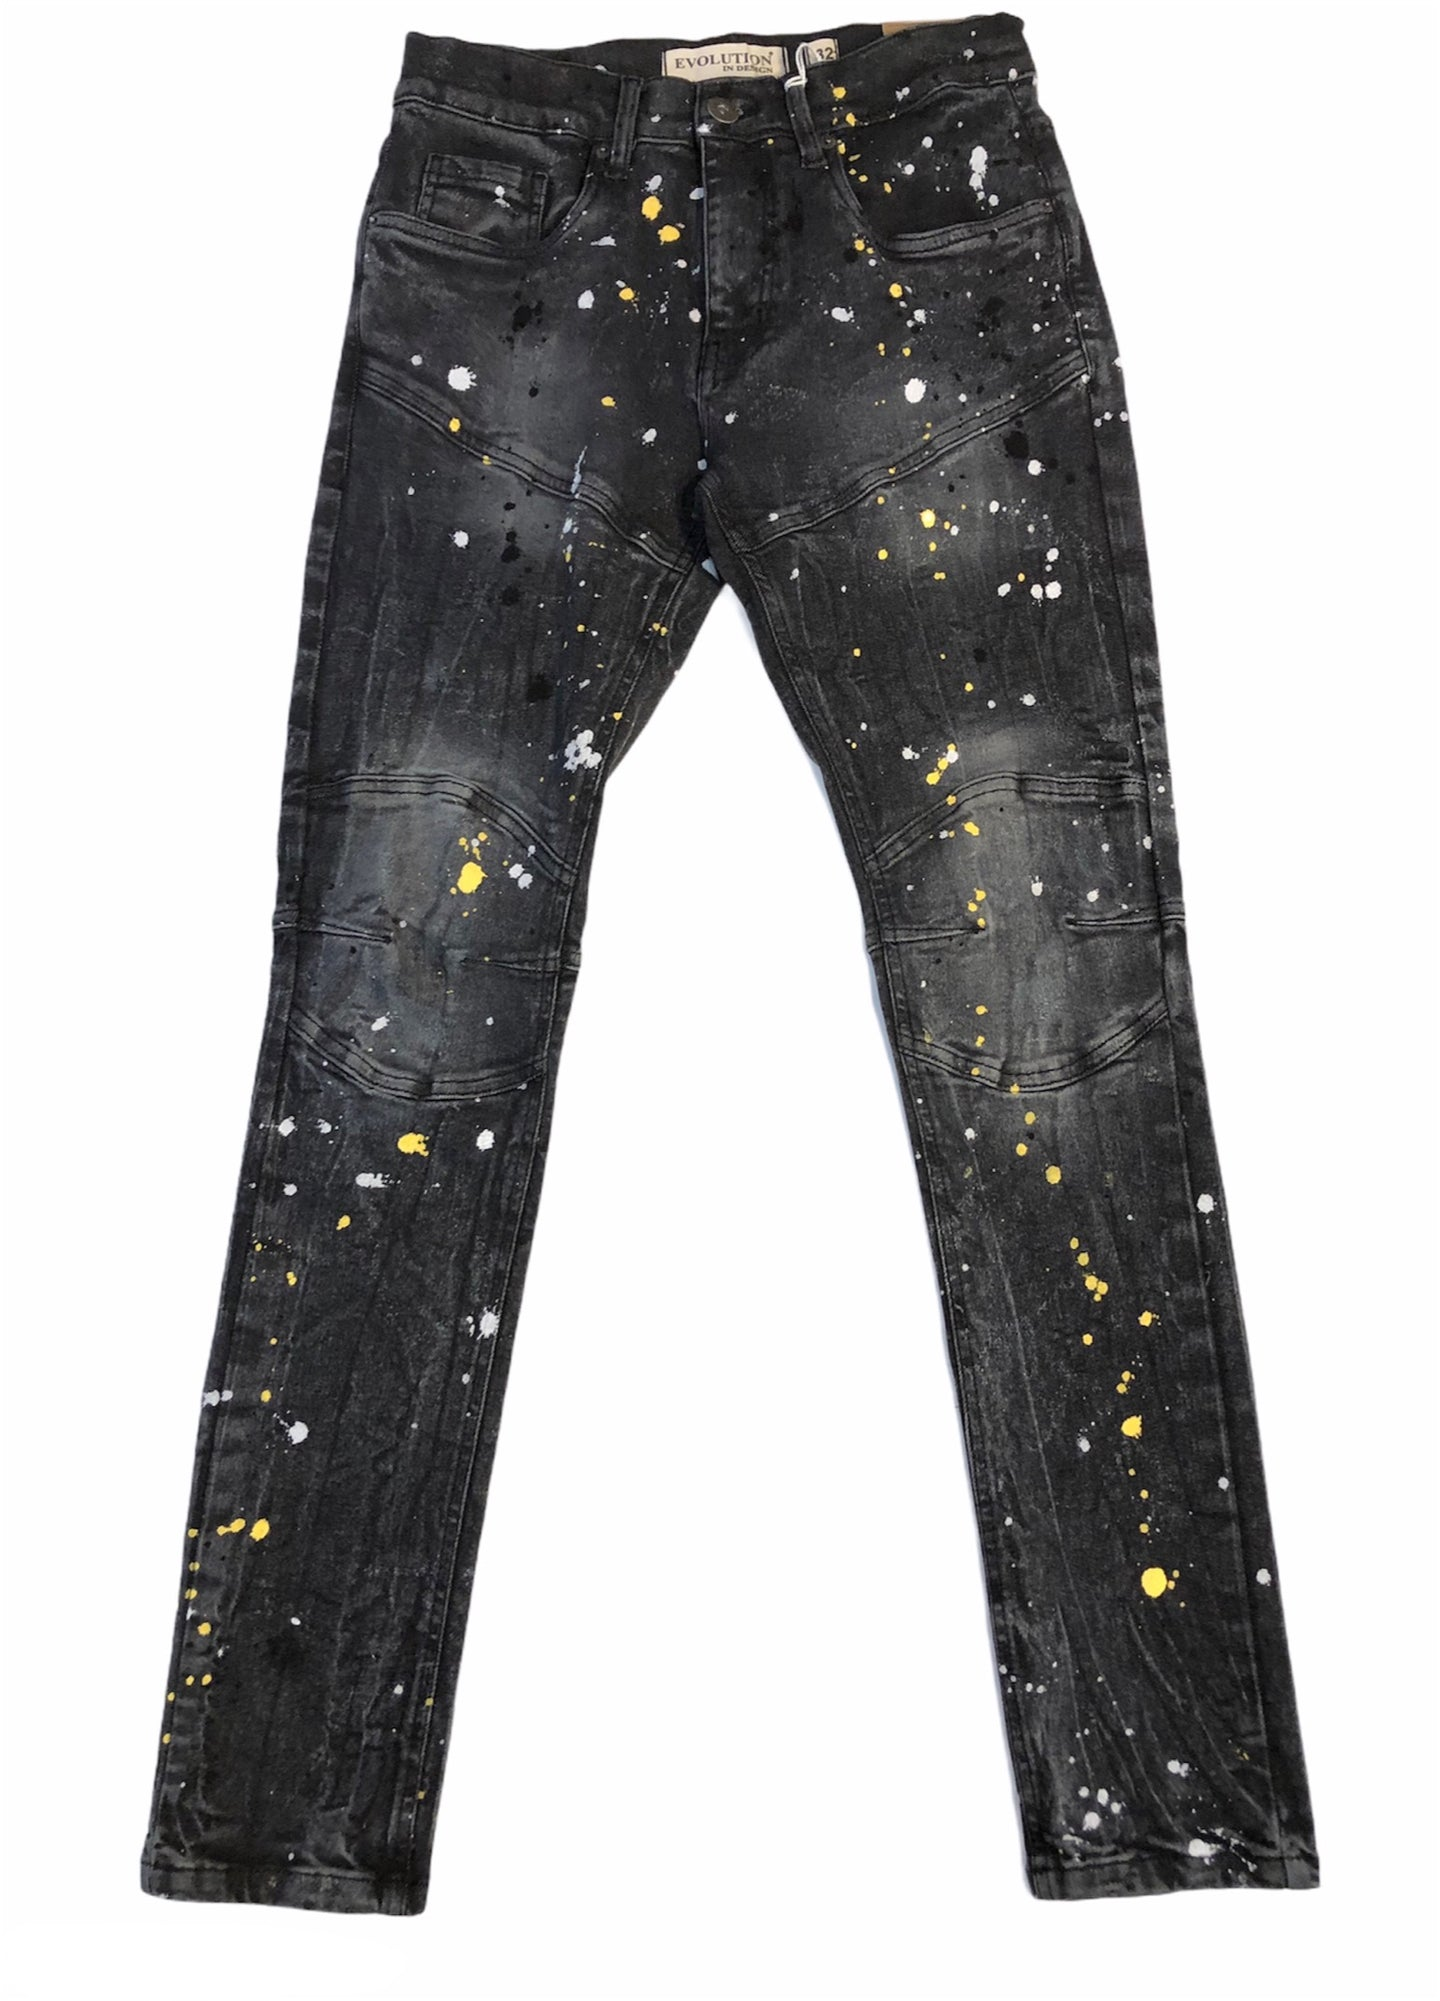 Slim Fit Black Paint Splattered Jeans